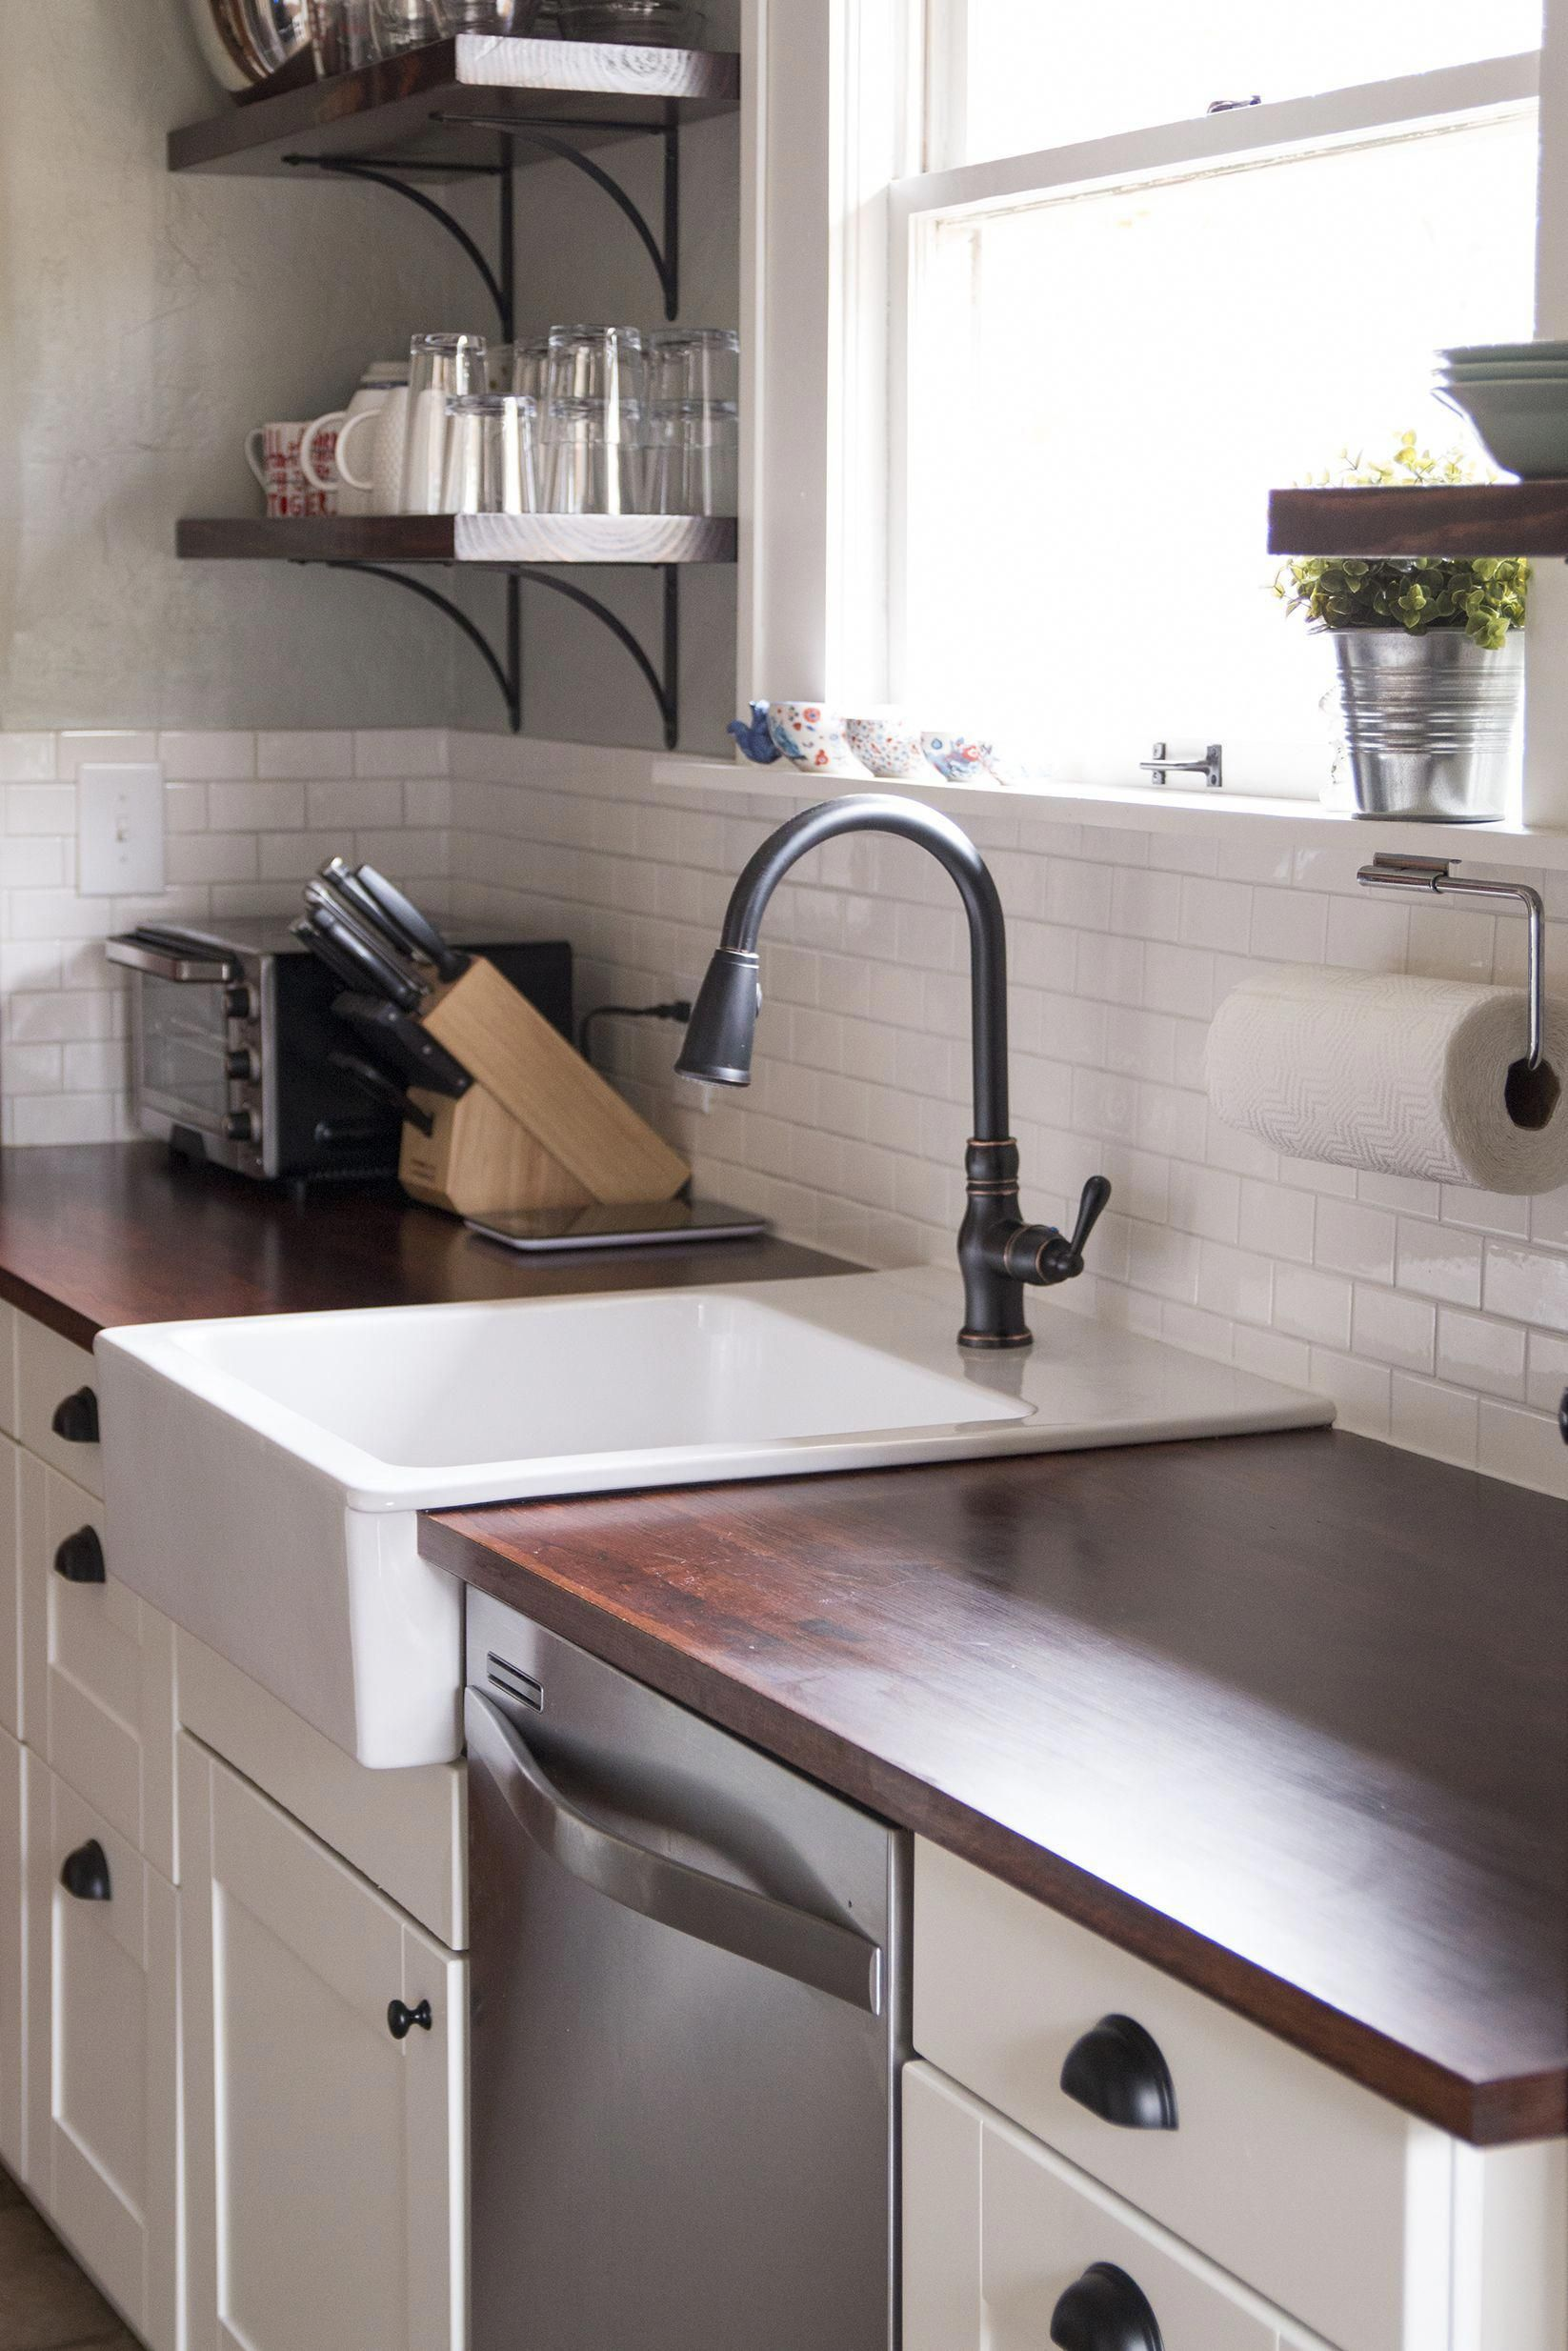 incredible kitchen remodel | All About Incredible Kitchen Remodel Ideas Do It Yourself ...